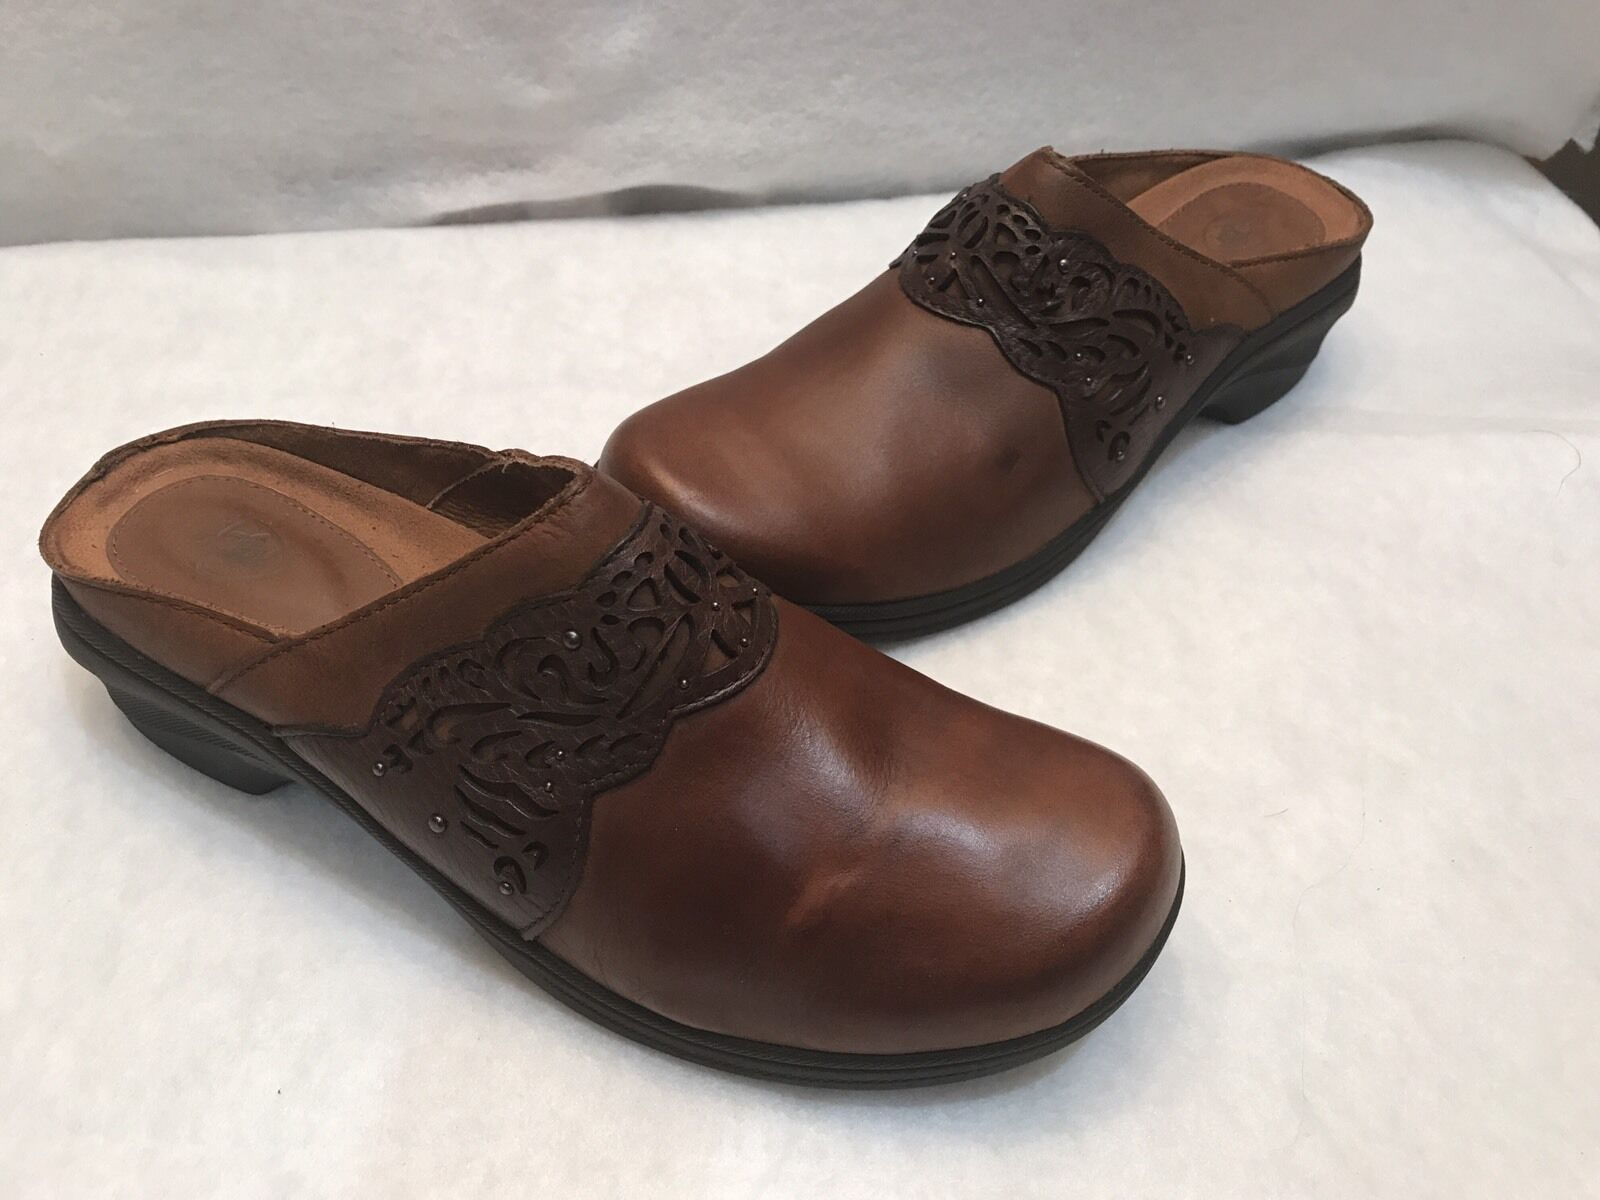 Ariat Brown Leather Clogs Slip On shoes Mules 10 B